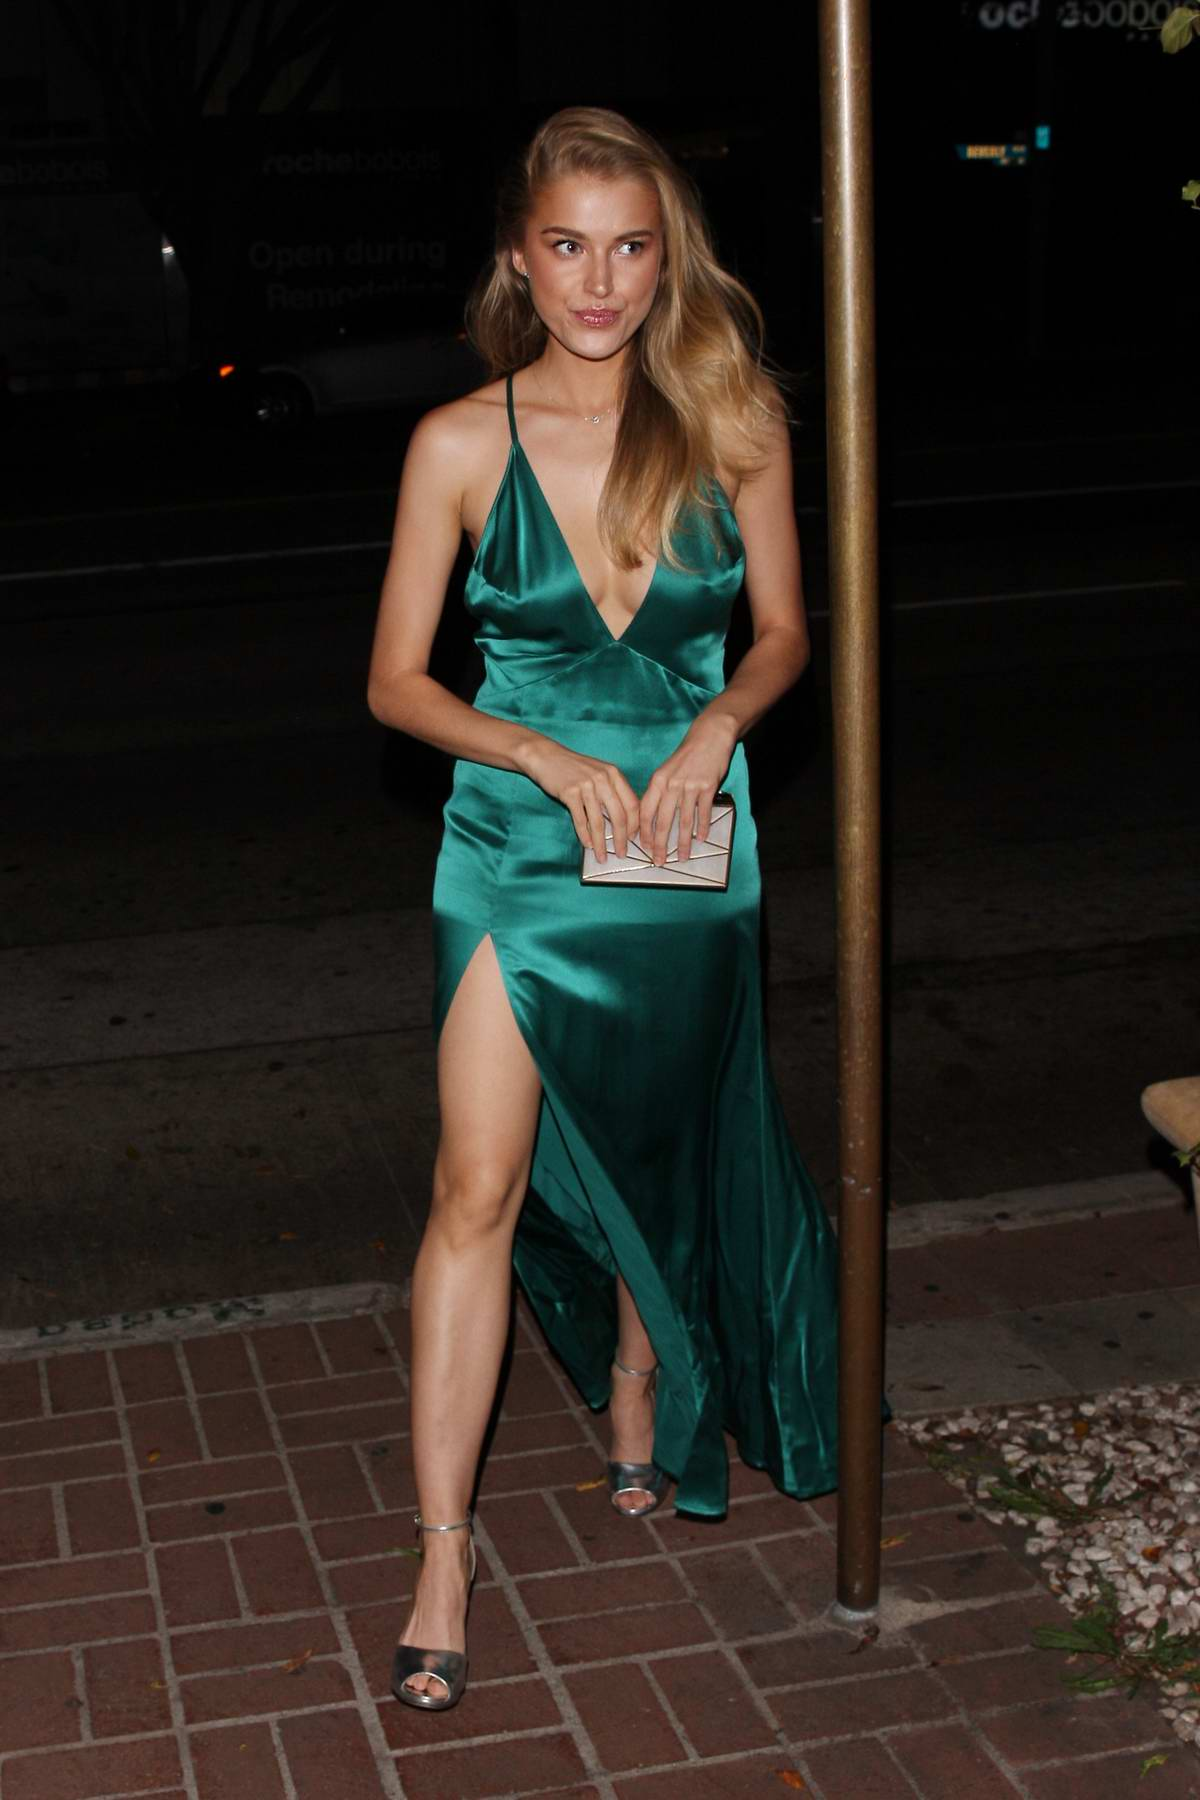 Tanya Mityushina seen leaving Madeo Restaurant in a green dress during a night out in West Hollywood, Los Angeles